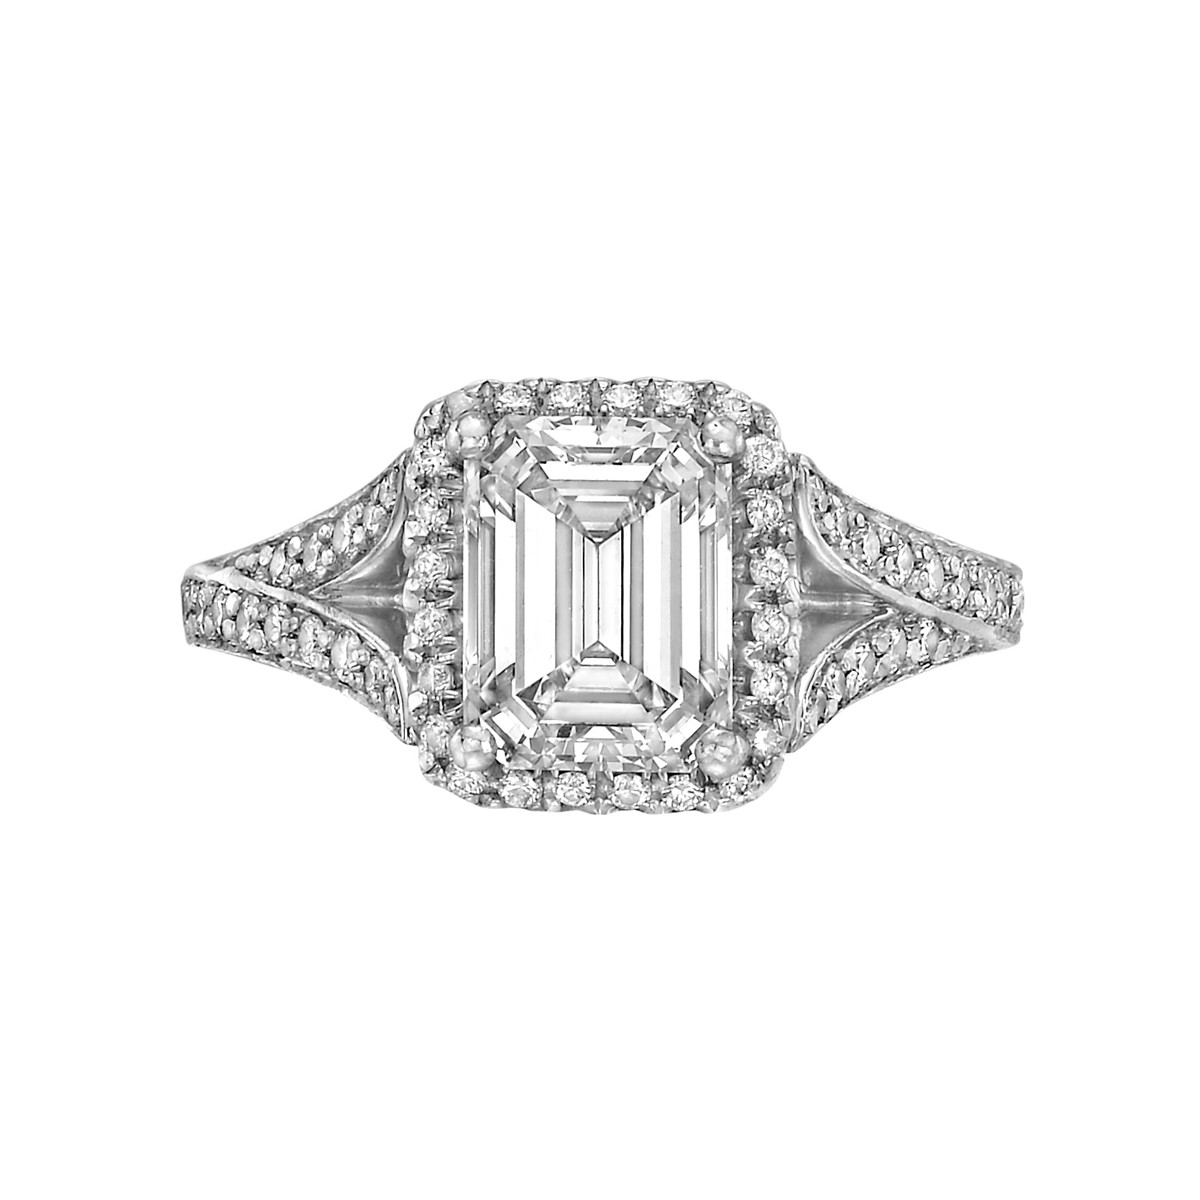 1.84 Carat Emerald-Cut Diamond Ring